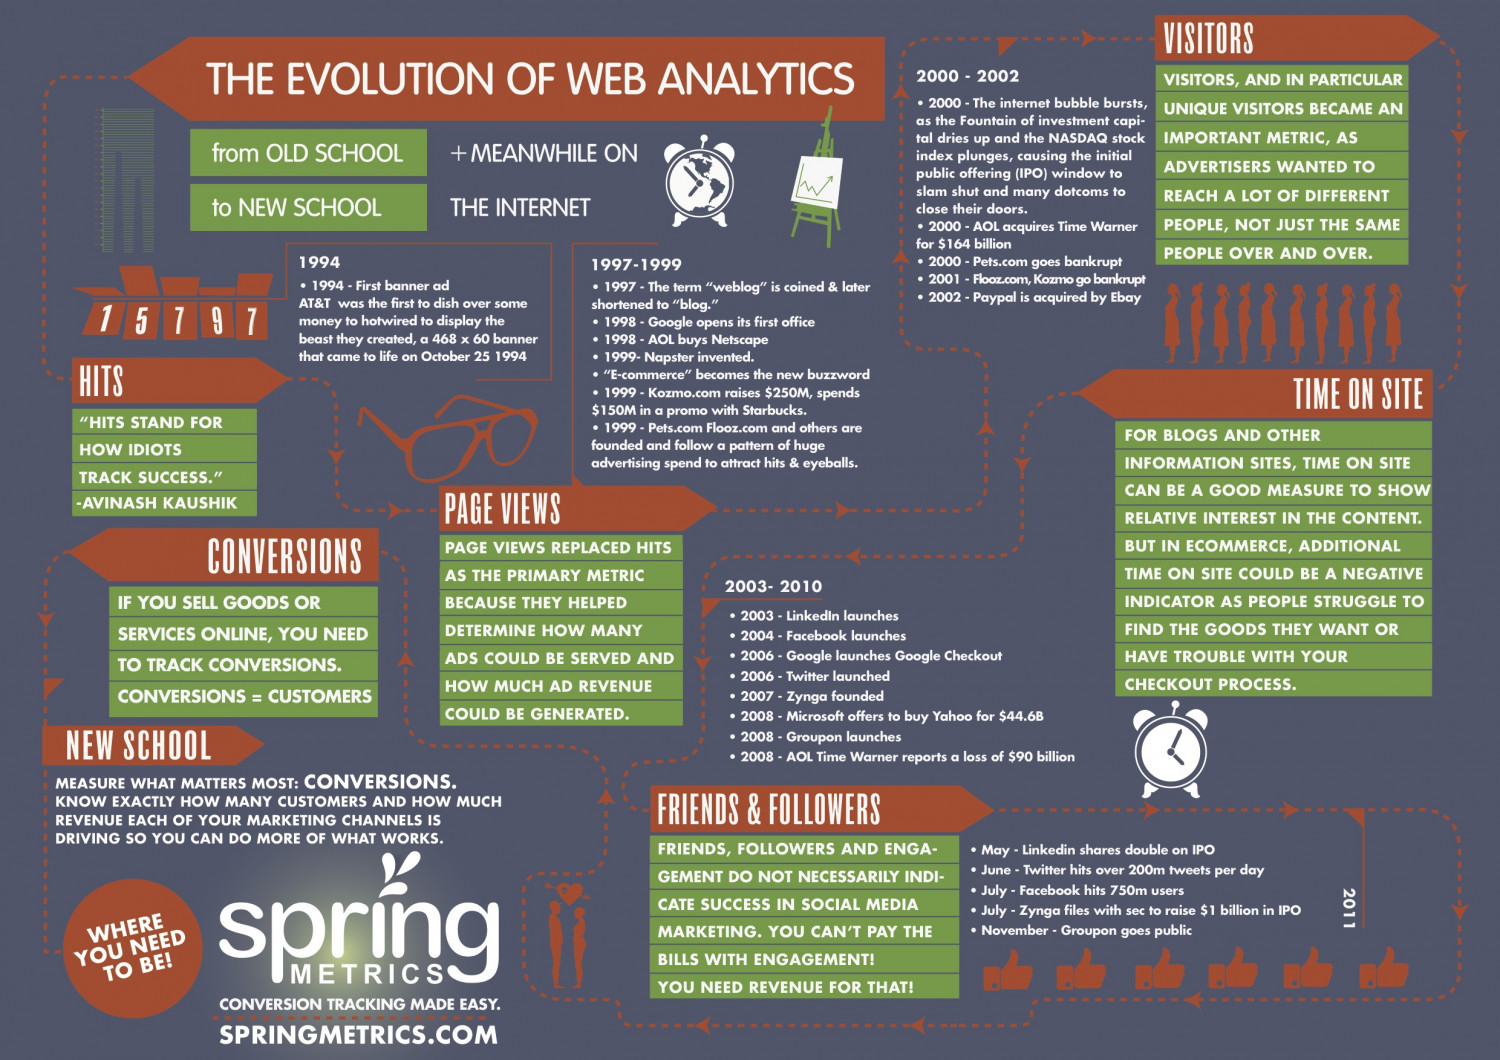 The Evolution of Web Analytics  Infographic